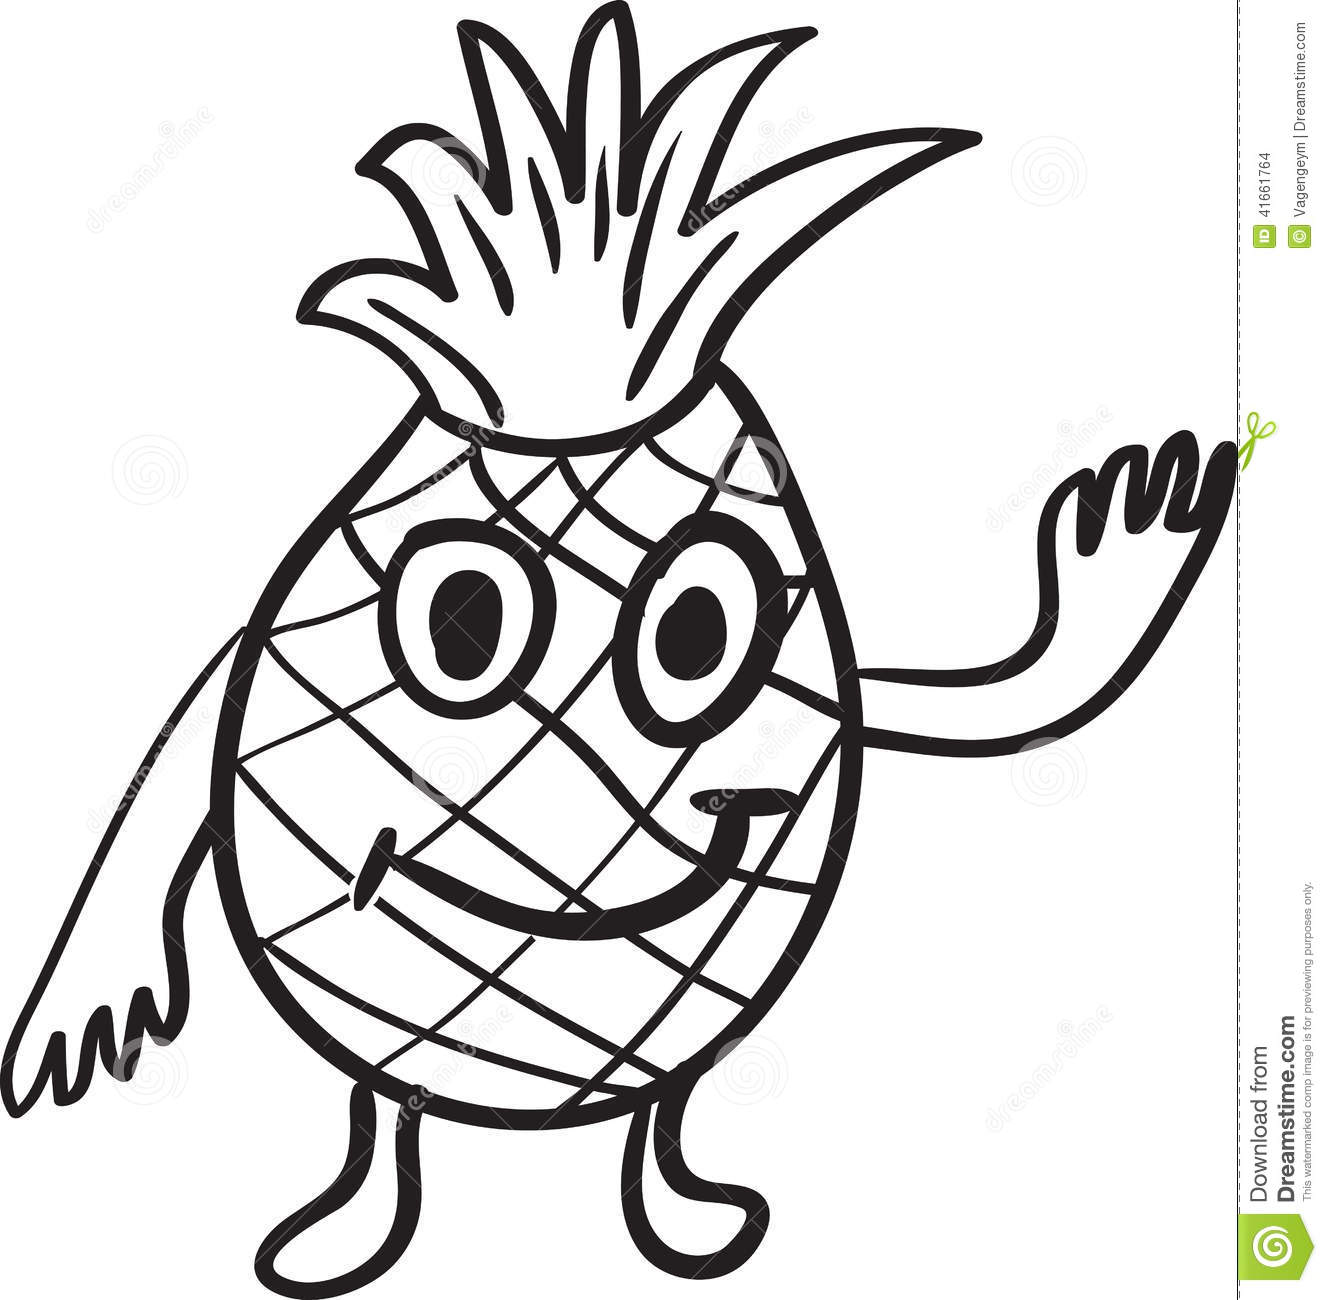 cartoon pineapple coloring page - pineapple cartoon sketch stock vector illustration of